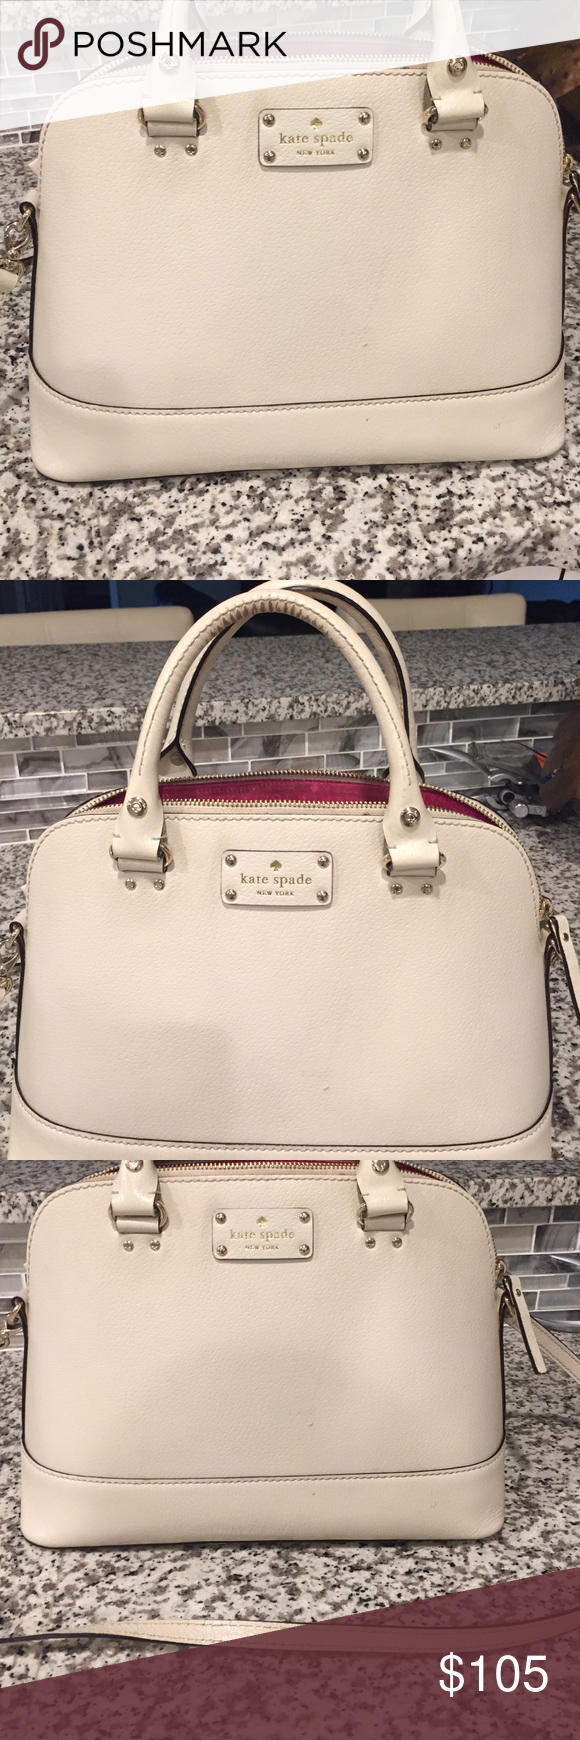 Kate Spade Cream handbag Satchel with zip top closure. Double slide pockets and a zipper pocket. Pink lining. Kate spade gold embossed signature. Bags Satchels